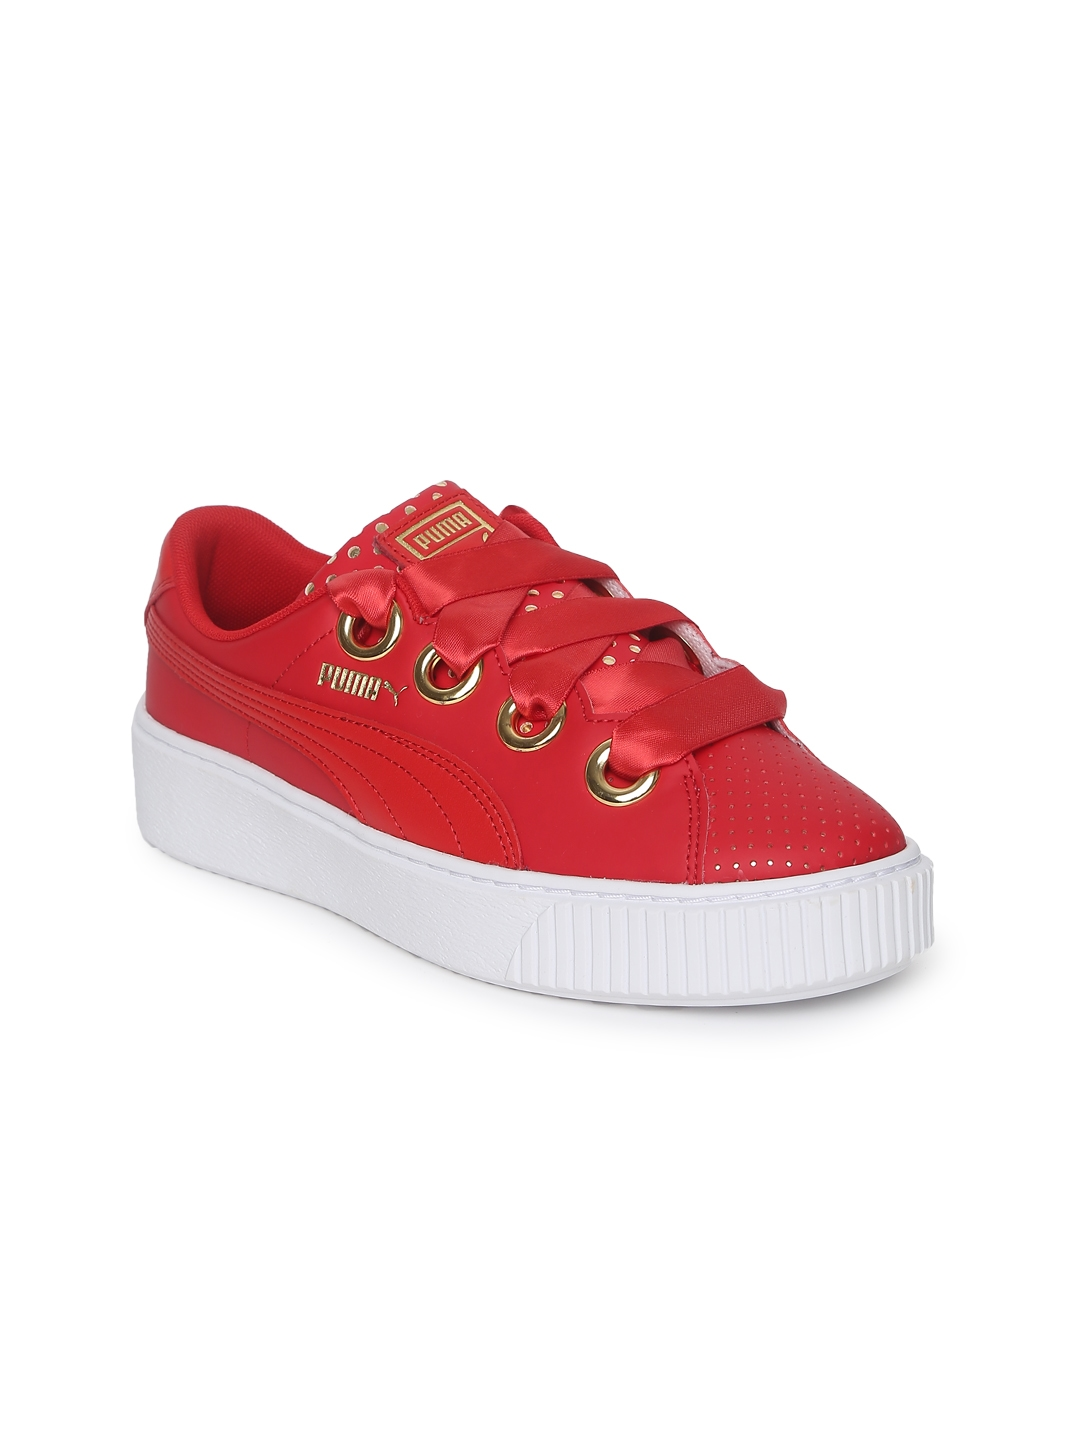 d82b888dcbf1 Buy Puma Women Red Platform Kiss Ath Lux Sneakers - Casual Shoes for ...